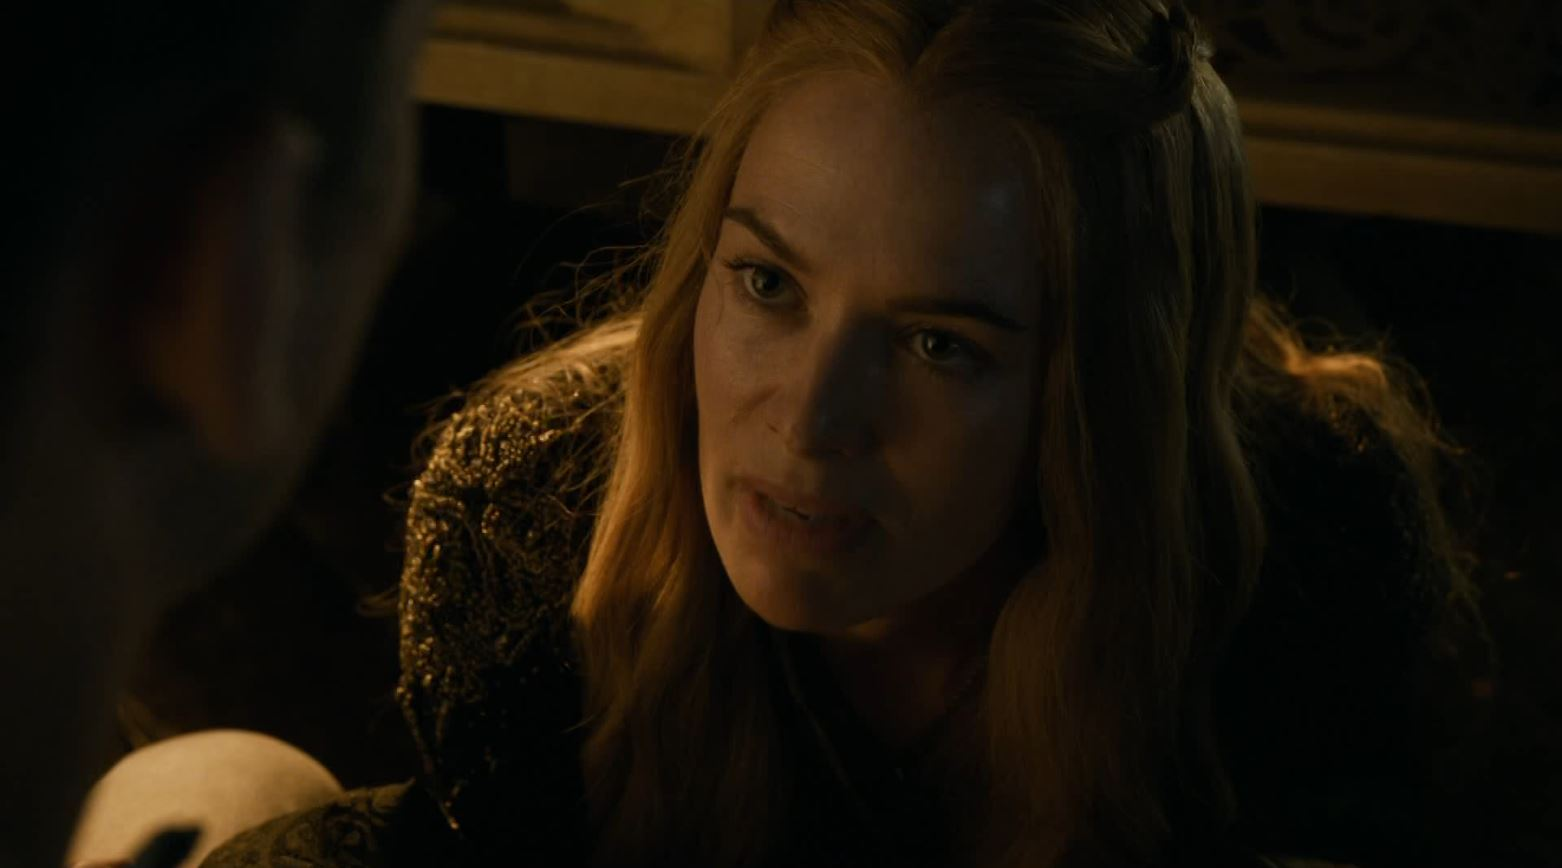 Game of Thrones Season 4 Finale Review - Lena Headey as Cersei Lannister